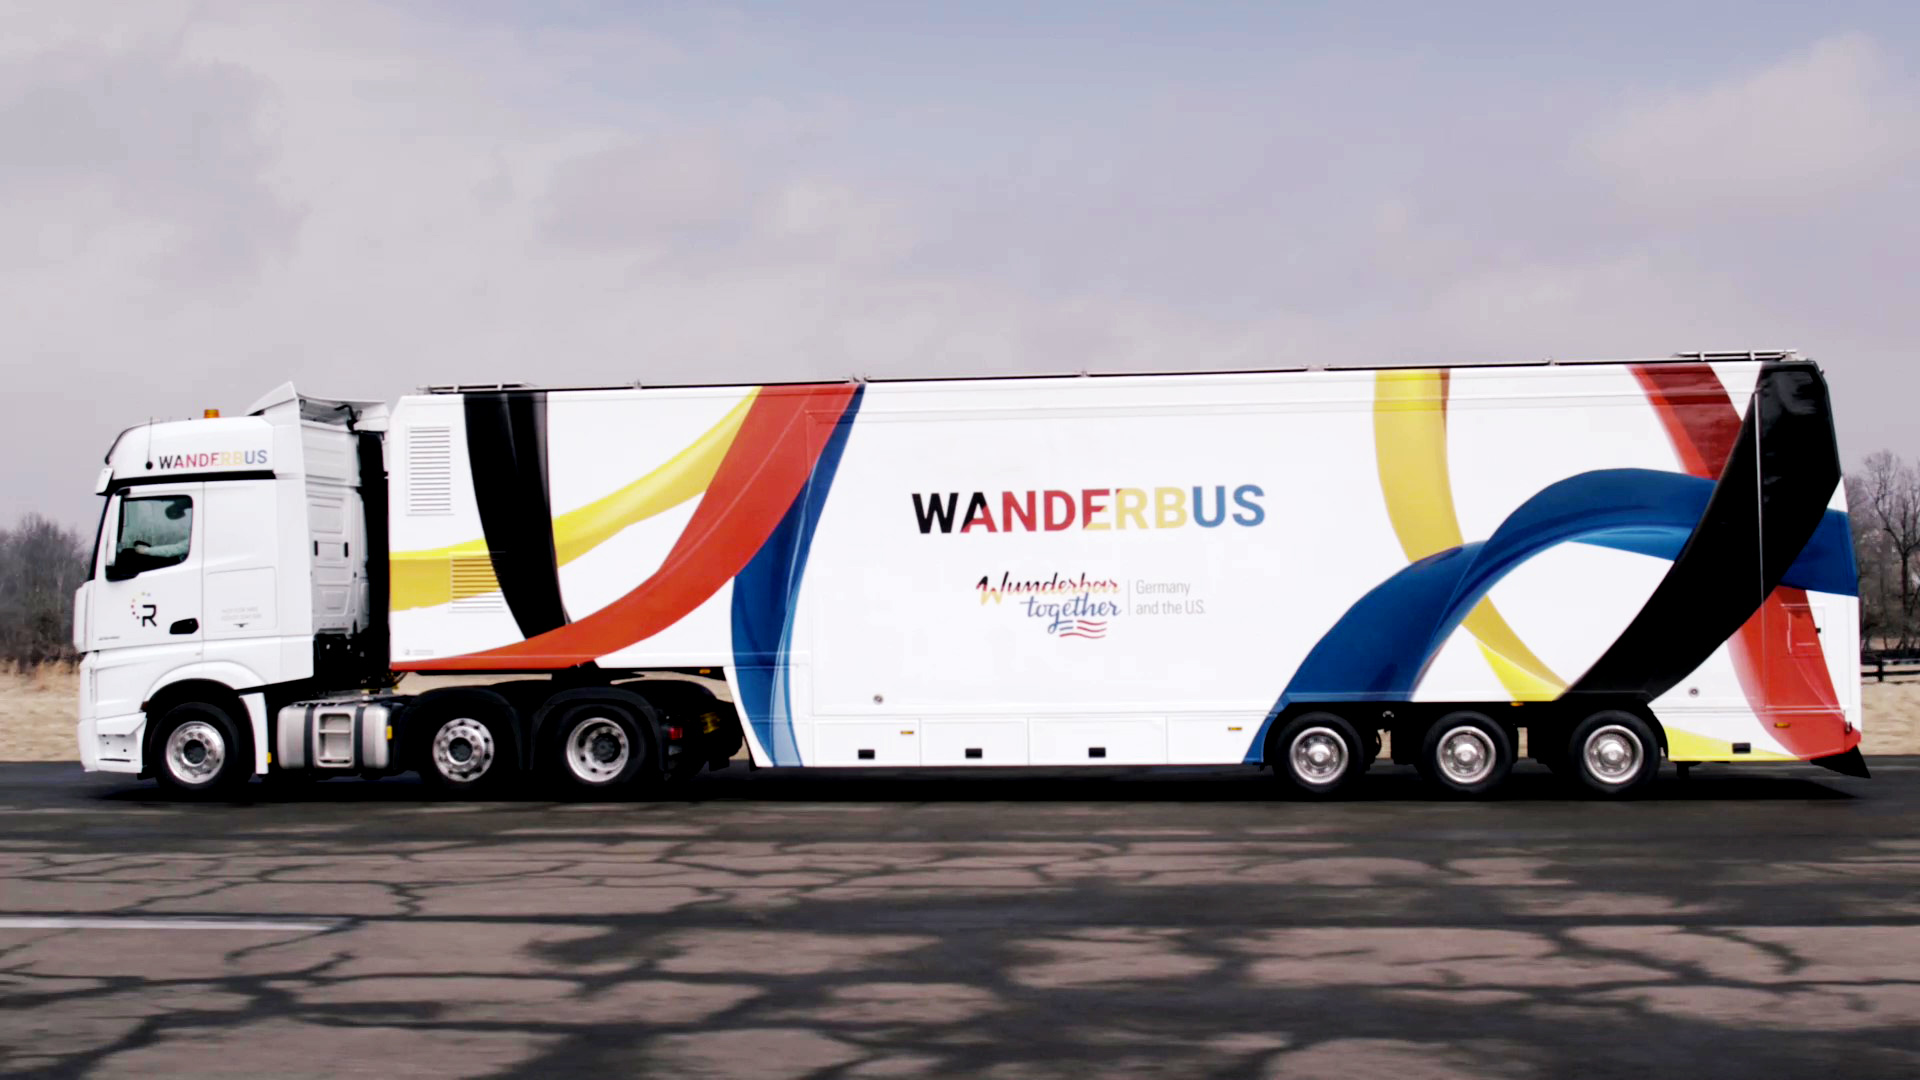 WANDERBUS BRINGS GERMANY TO THE U.S.